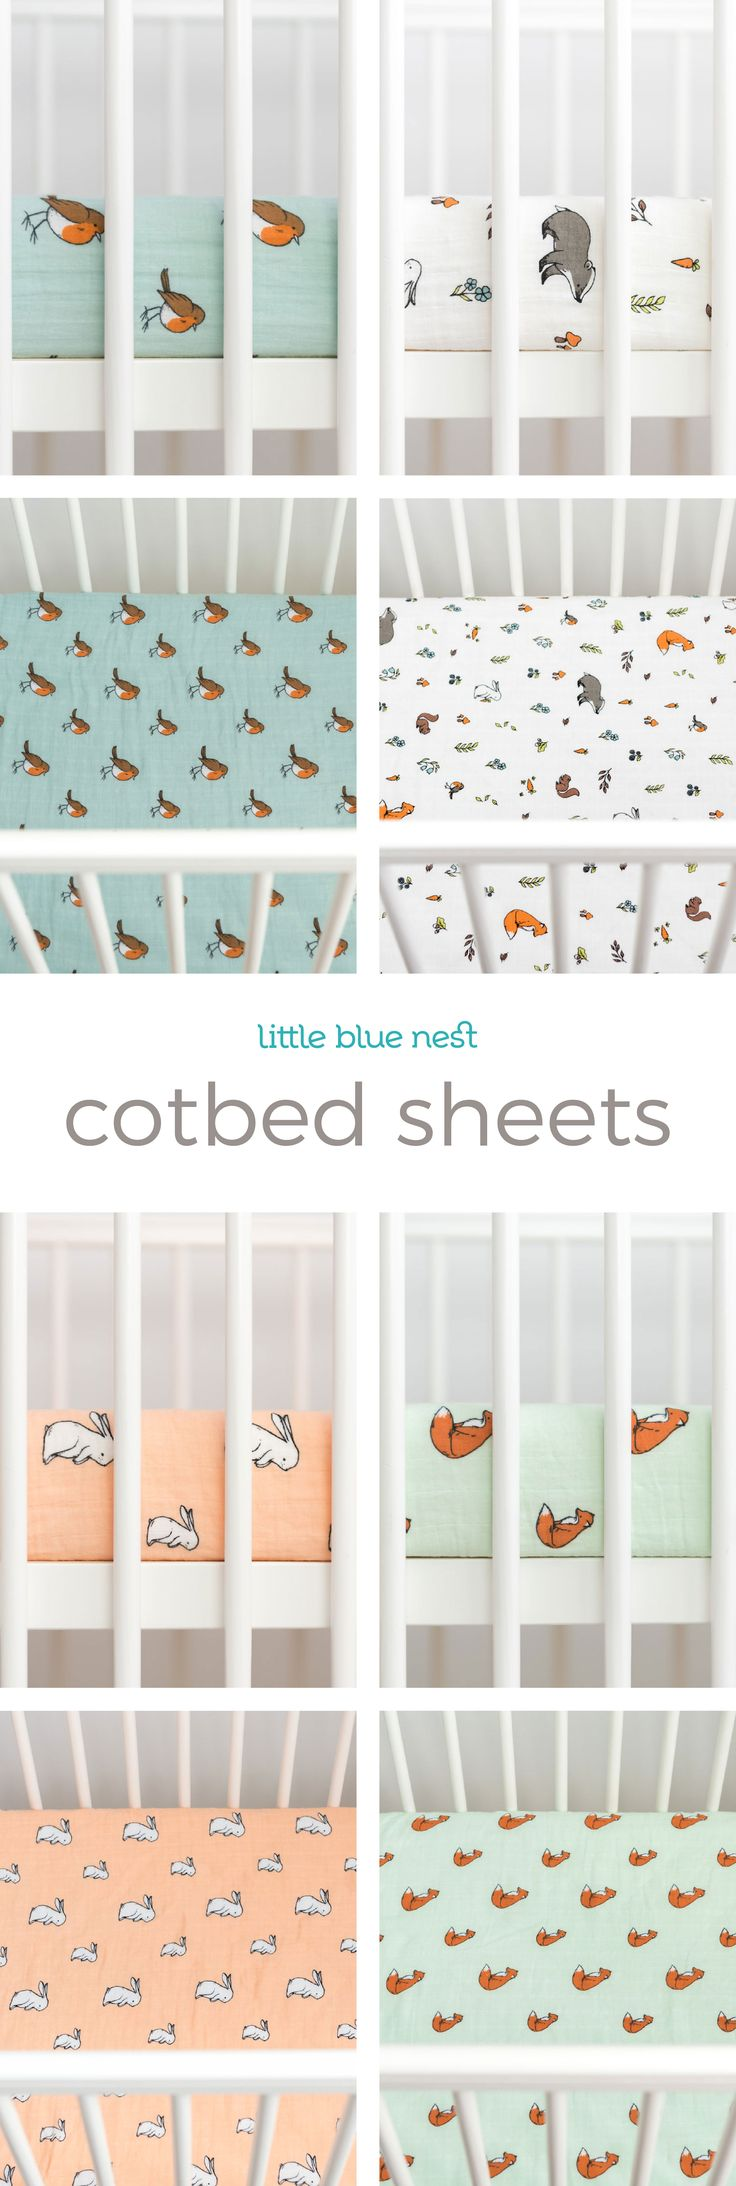 Four beautiful cotbed sheet designs for your perfect woodland nursery. Our cot bedding sheets are made from the softest and purest GOTS organic cotton muslin thread, carefully crafted to help your little one get a blissful nights sleep.  Each fitted sheet is elasticated to fit cot or crib mattresses from 130x70cm to 140x70cm up to a maximum thickness of 20cm. You can also tuck them around smaller cot or crib mattresses sized 120x60cm. Designs include Little robin, Into the woods, Long ear…